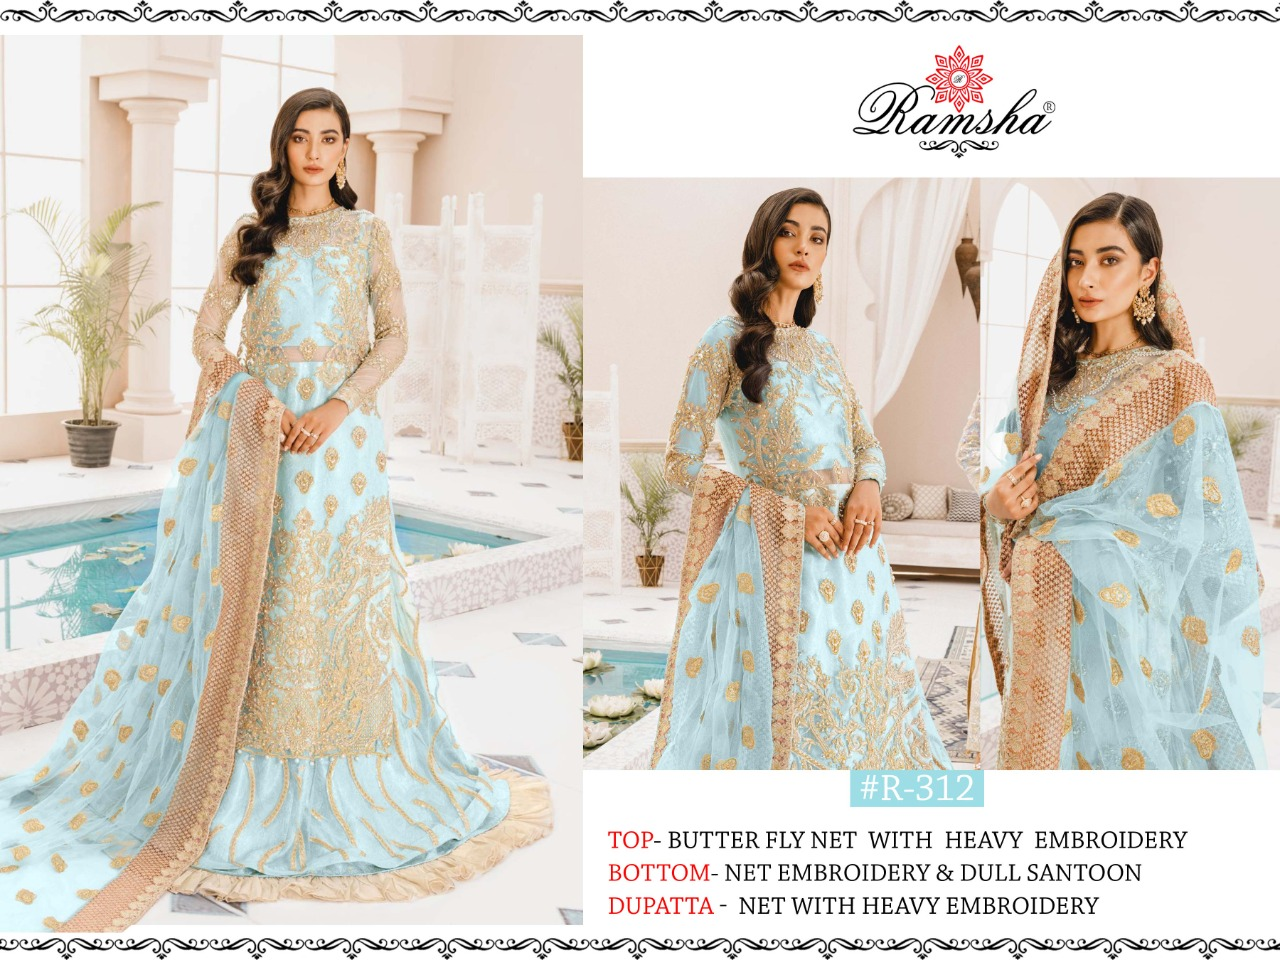 Ramsha R-312 Butterfly Net With Heavy Embroidery Work Pakistani Suits Collection At Wholesale Rate